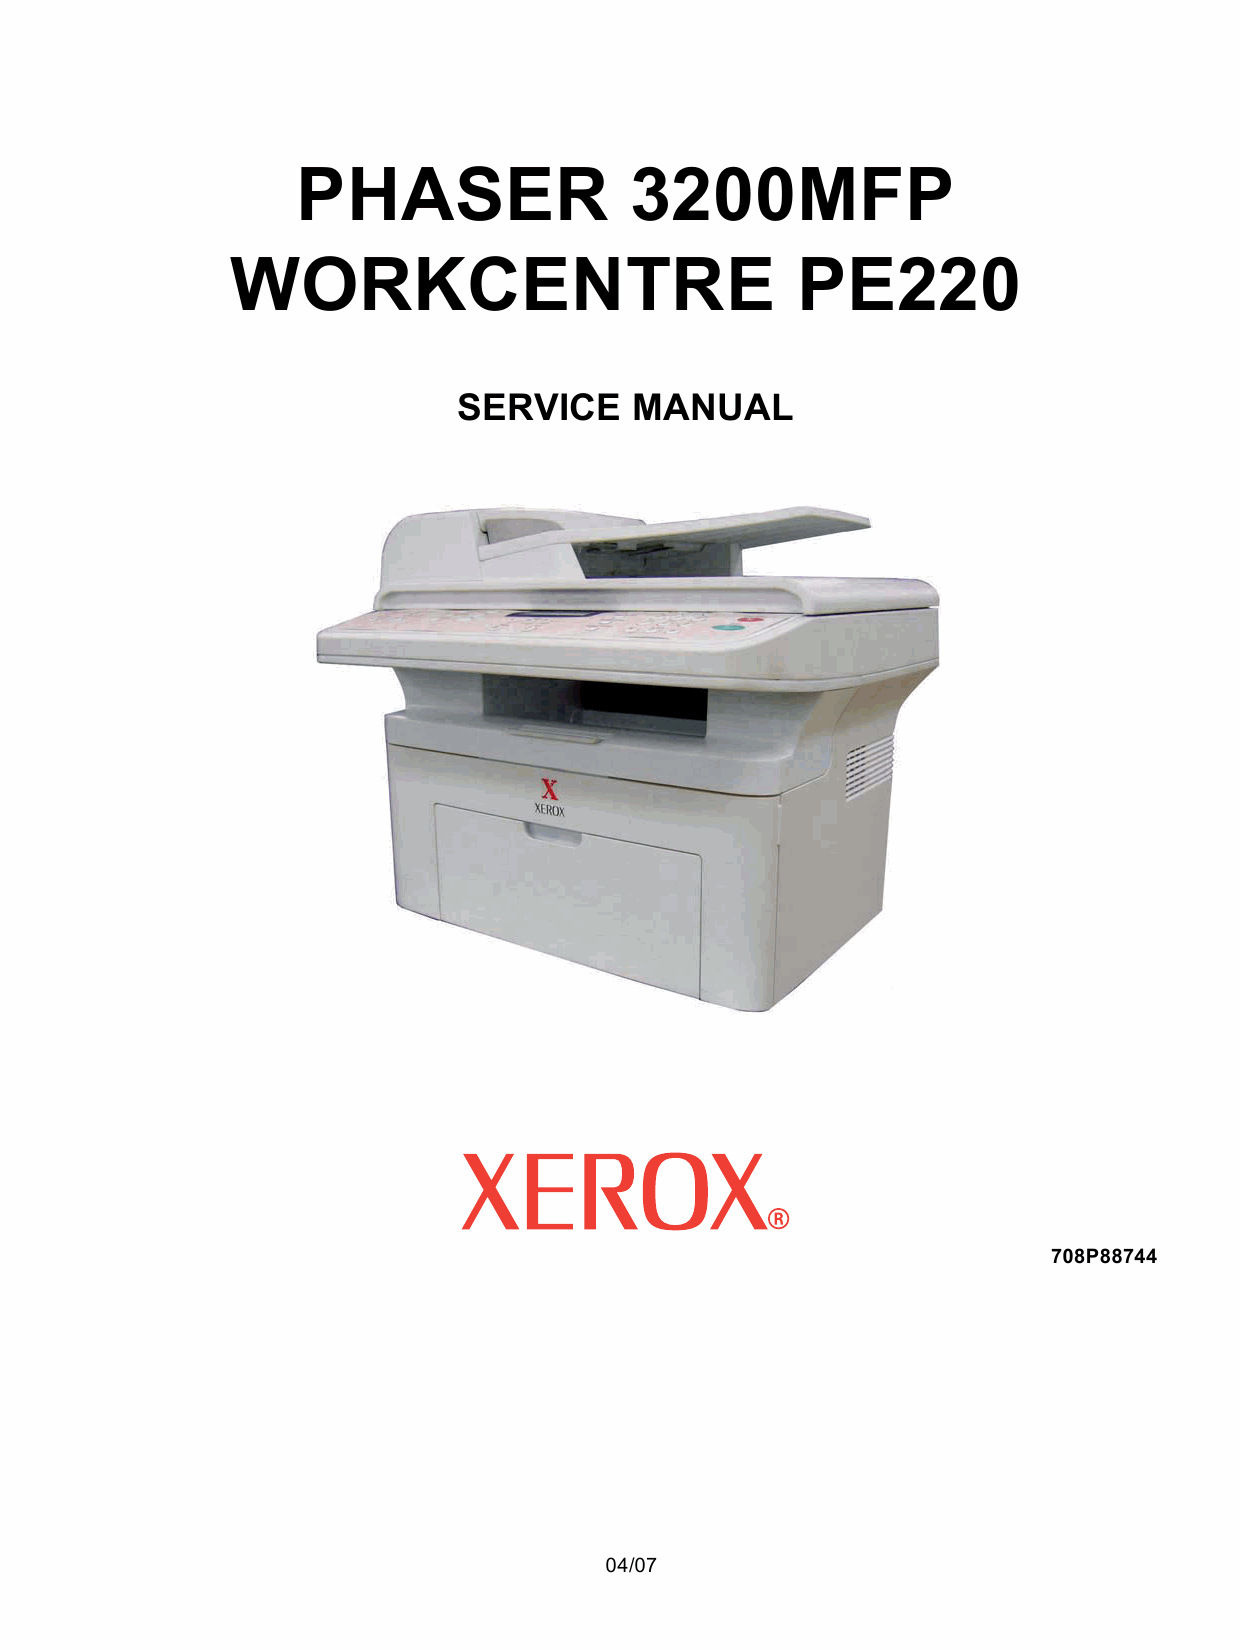 Xerox Phaser 3200-MFP WorkCentre-PE-220 Parts List and Service Manual-1